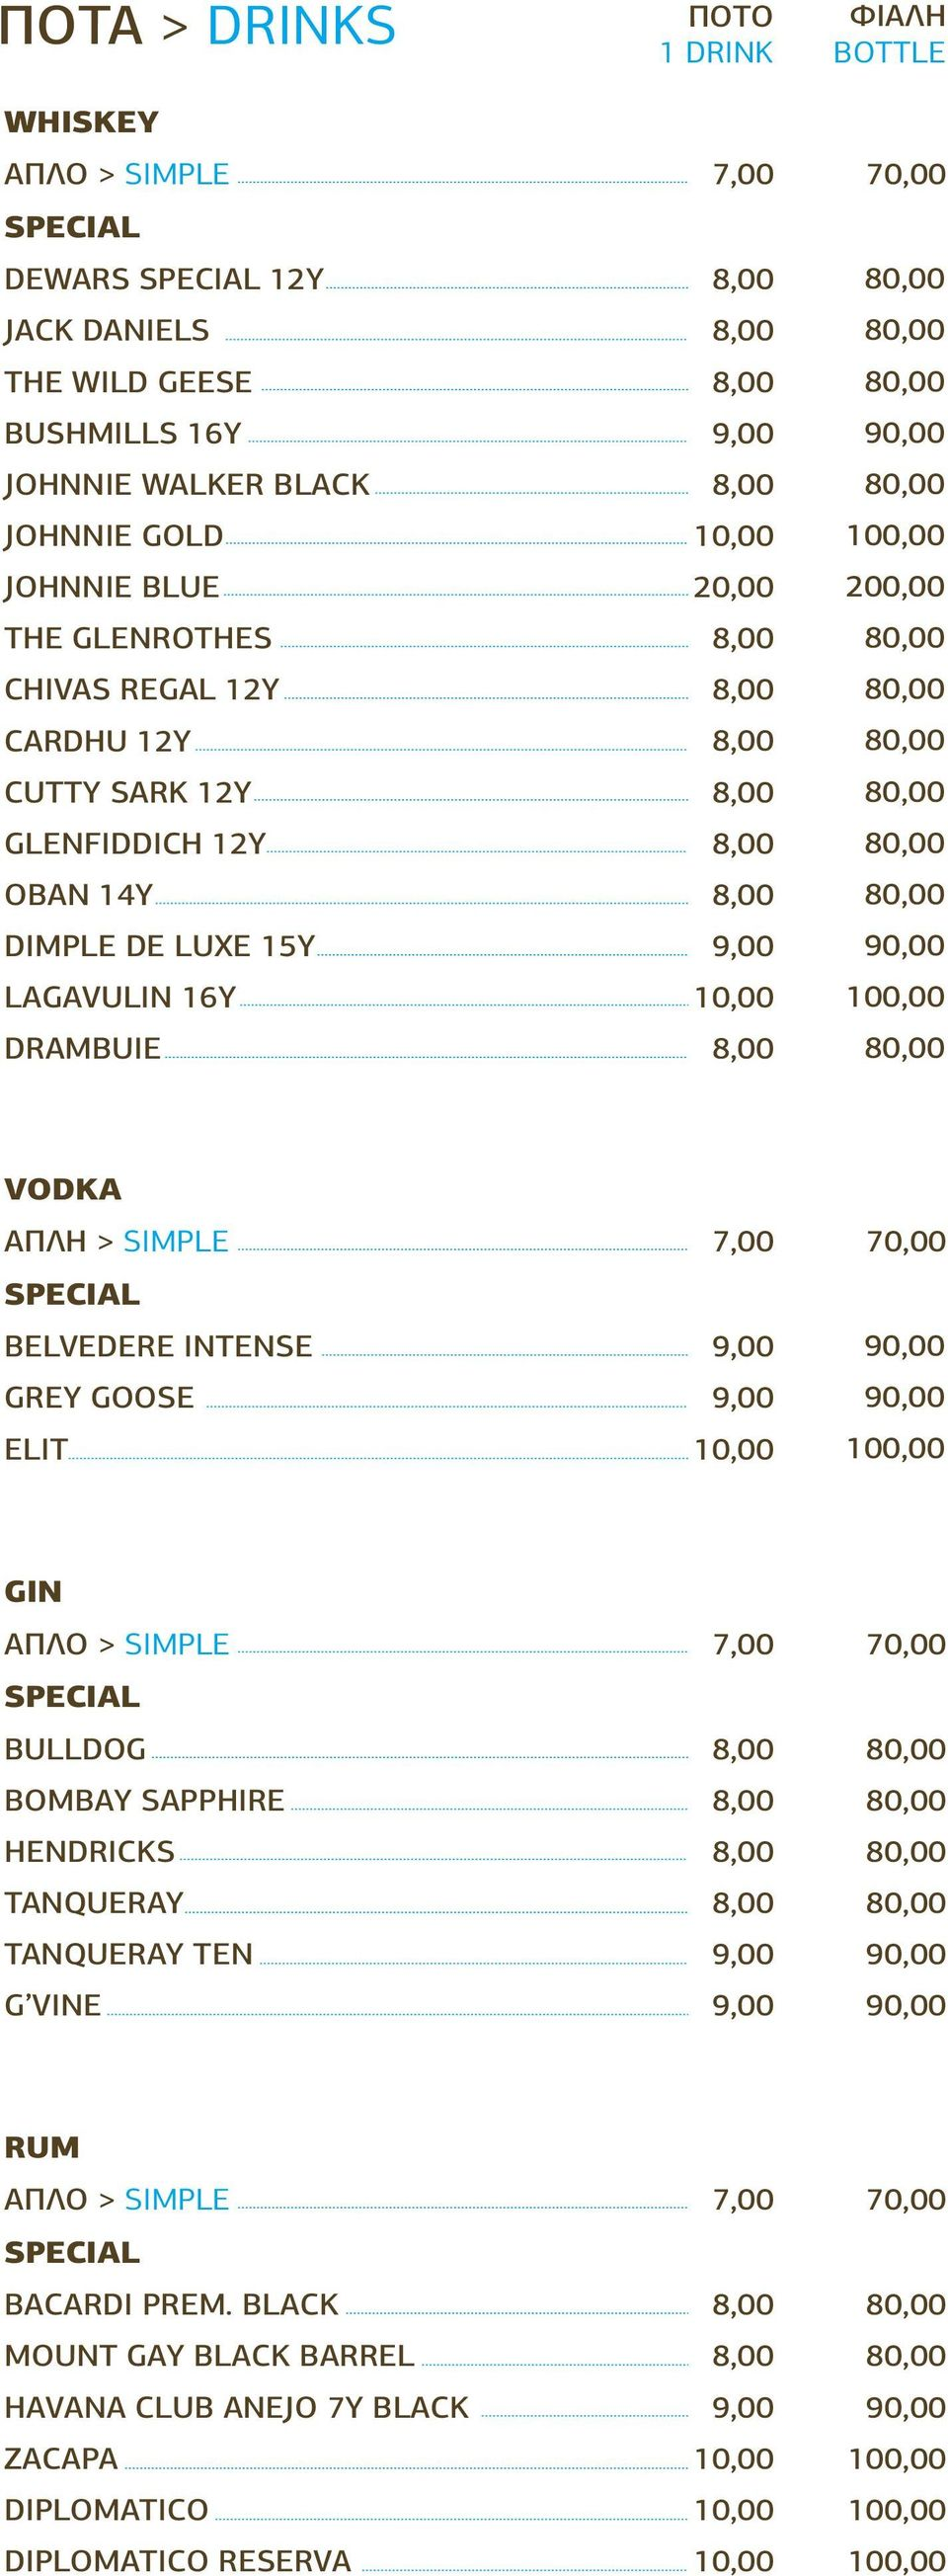 100,00 VODKA ΑΠΛΗ > SIMPLE SPECIAL BELVEDERE INTENSE GREY GOOSE ELIT 10,00 100,00 GIN ΑΠΛO > SIMPLE SPECIAL BULLDOG BOMBAY SAPPHIRE HENDRICKS TANQUERAY TANQUERAY TEN G